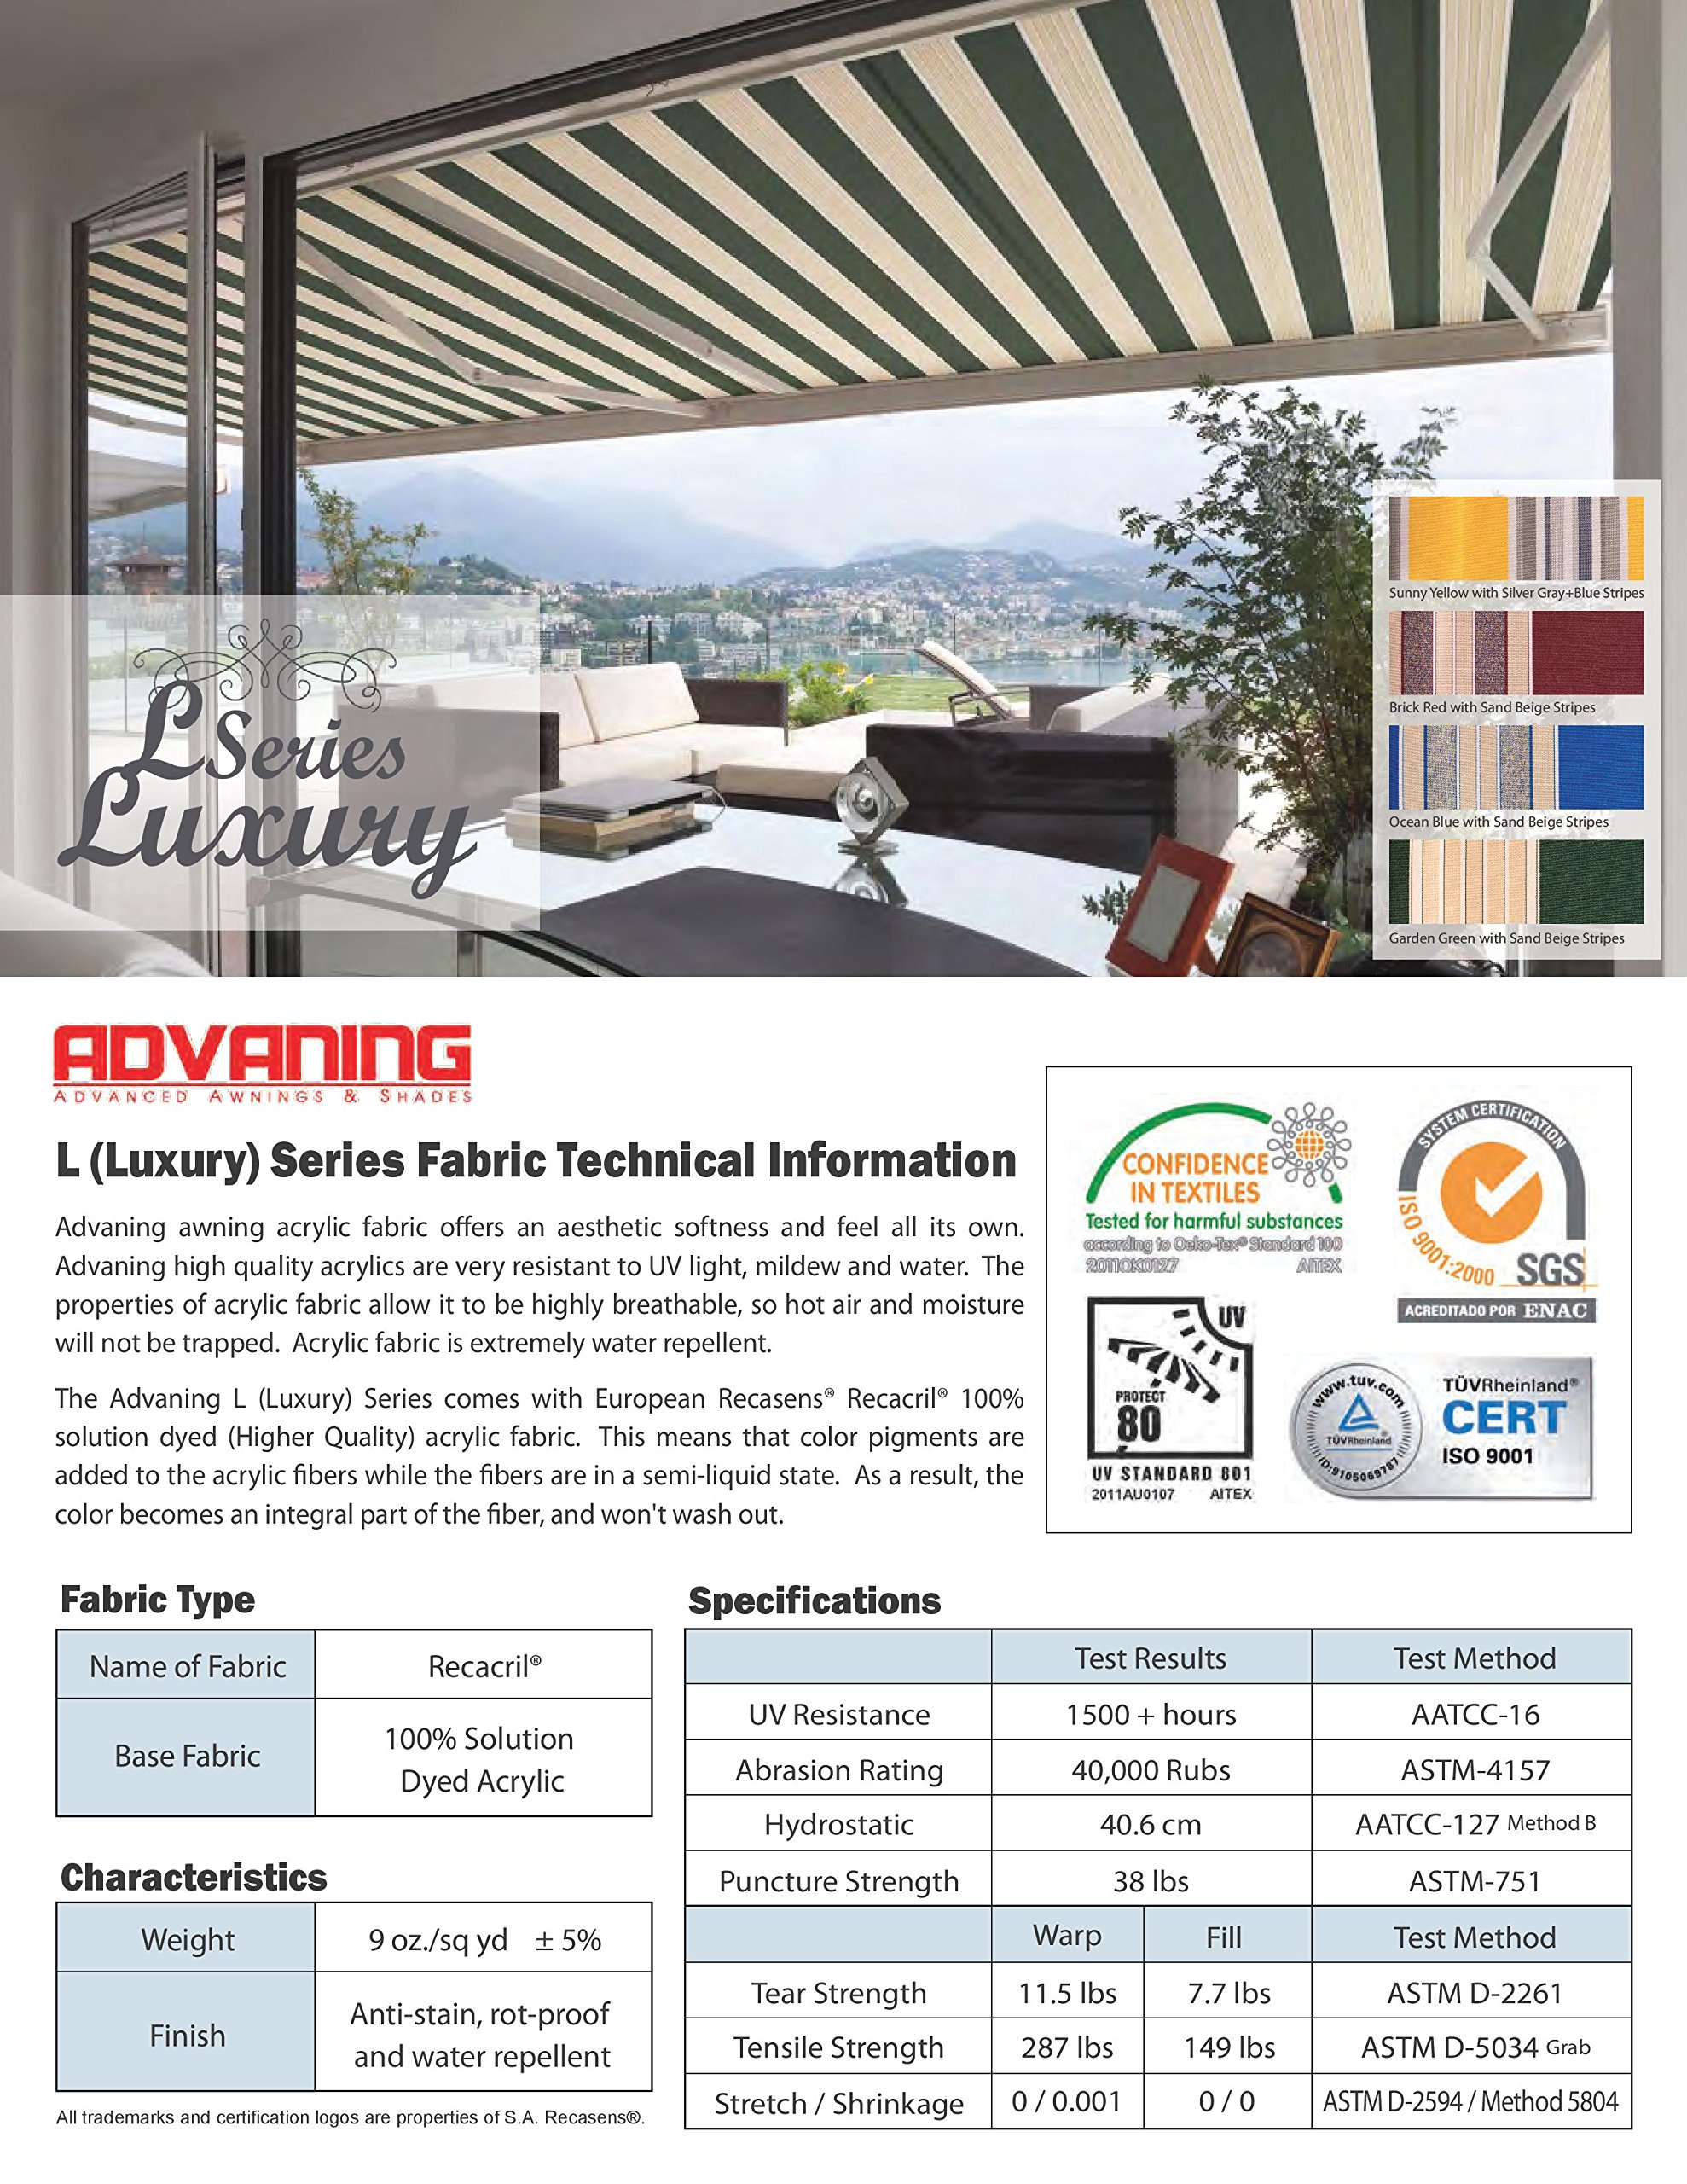 ADVANING Electric Luxury L Series, 12'x10', Semi-Cassette Top Quality Window/Door Cloth Cover Canopy Sun Shade Retractable Patio Awning, Garden Green with Sand Beige Stripes, Model: EA1210-A808H2 by ADVANING (Image #10)